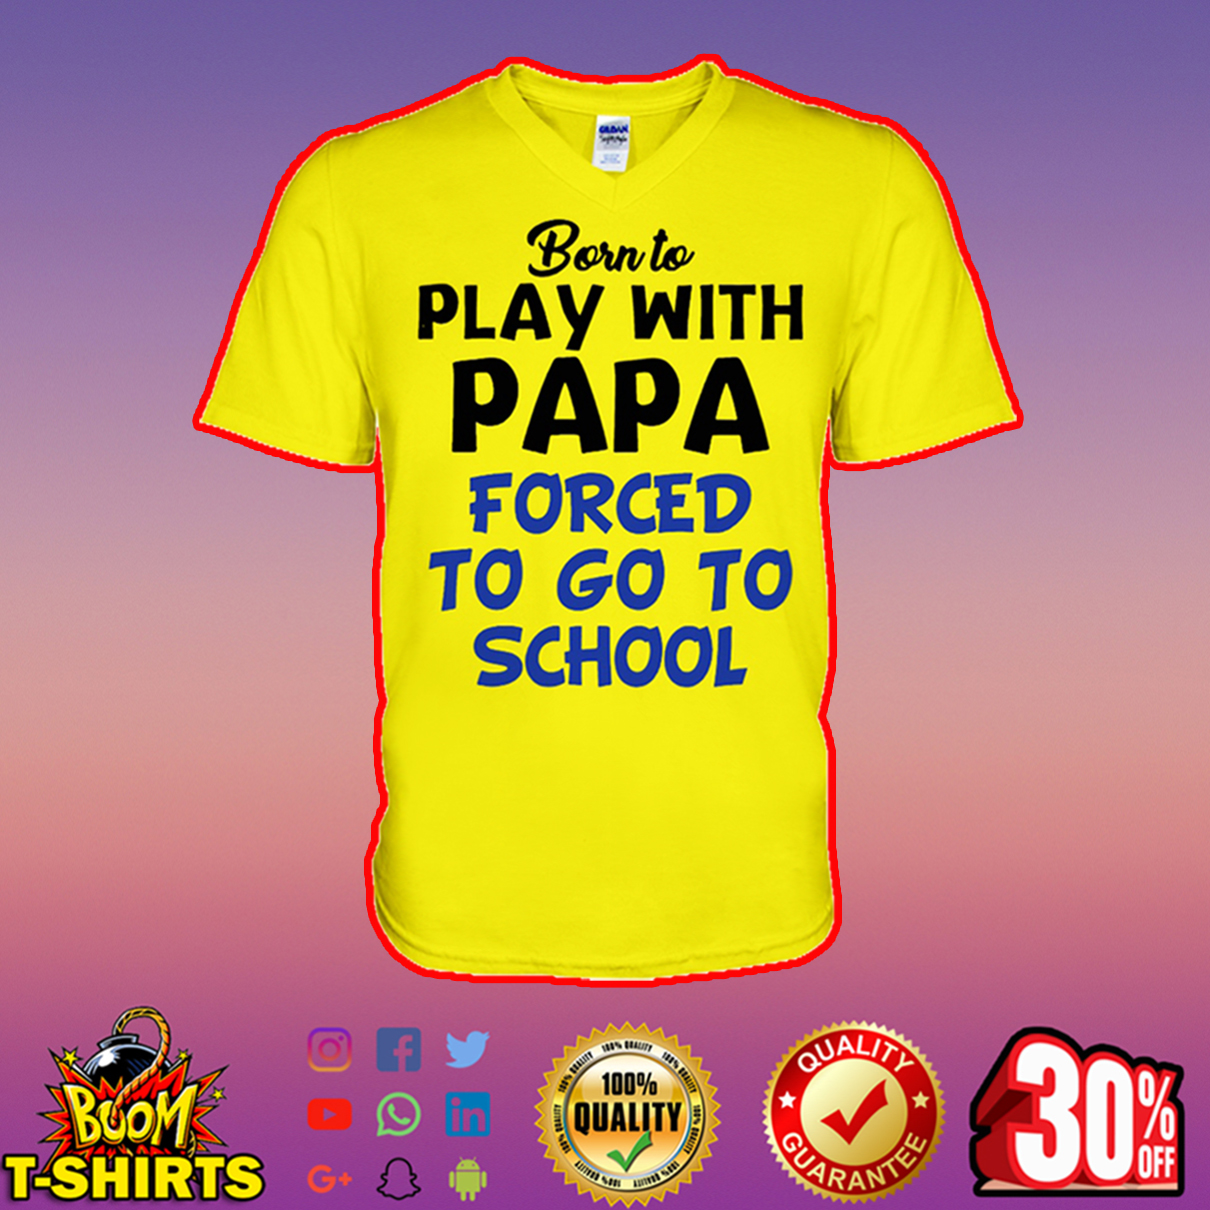 Born to play with papa forced to go to school v-neck